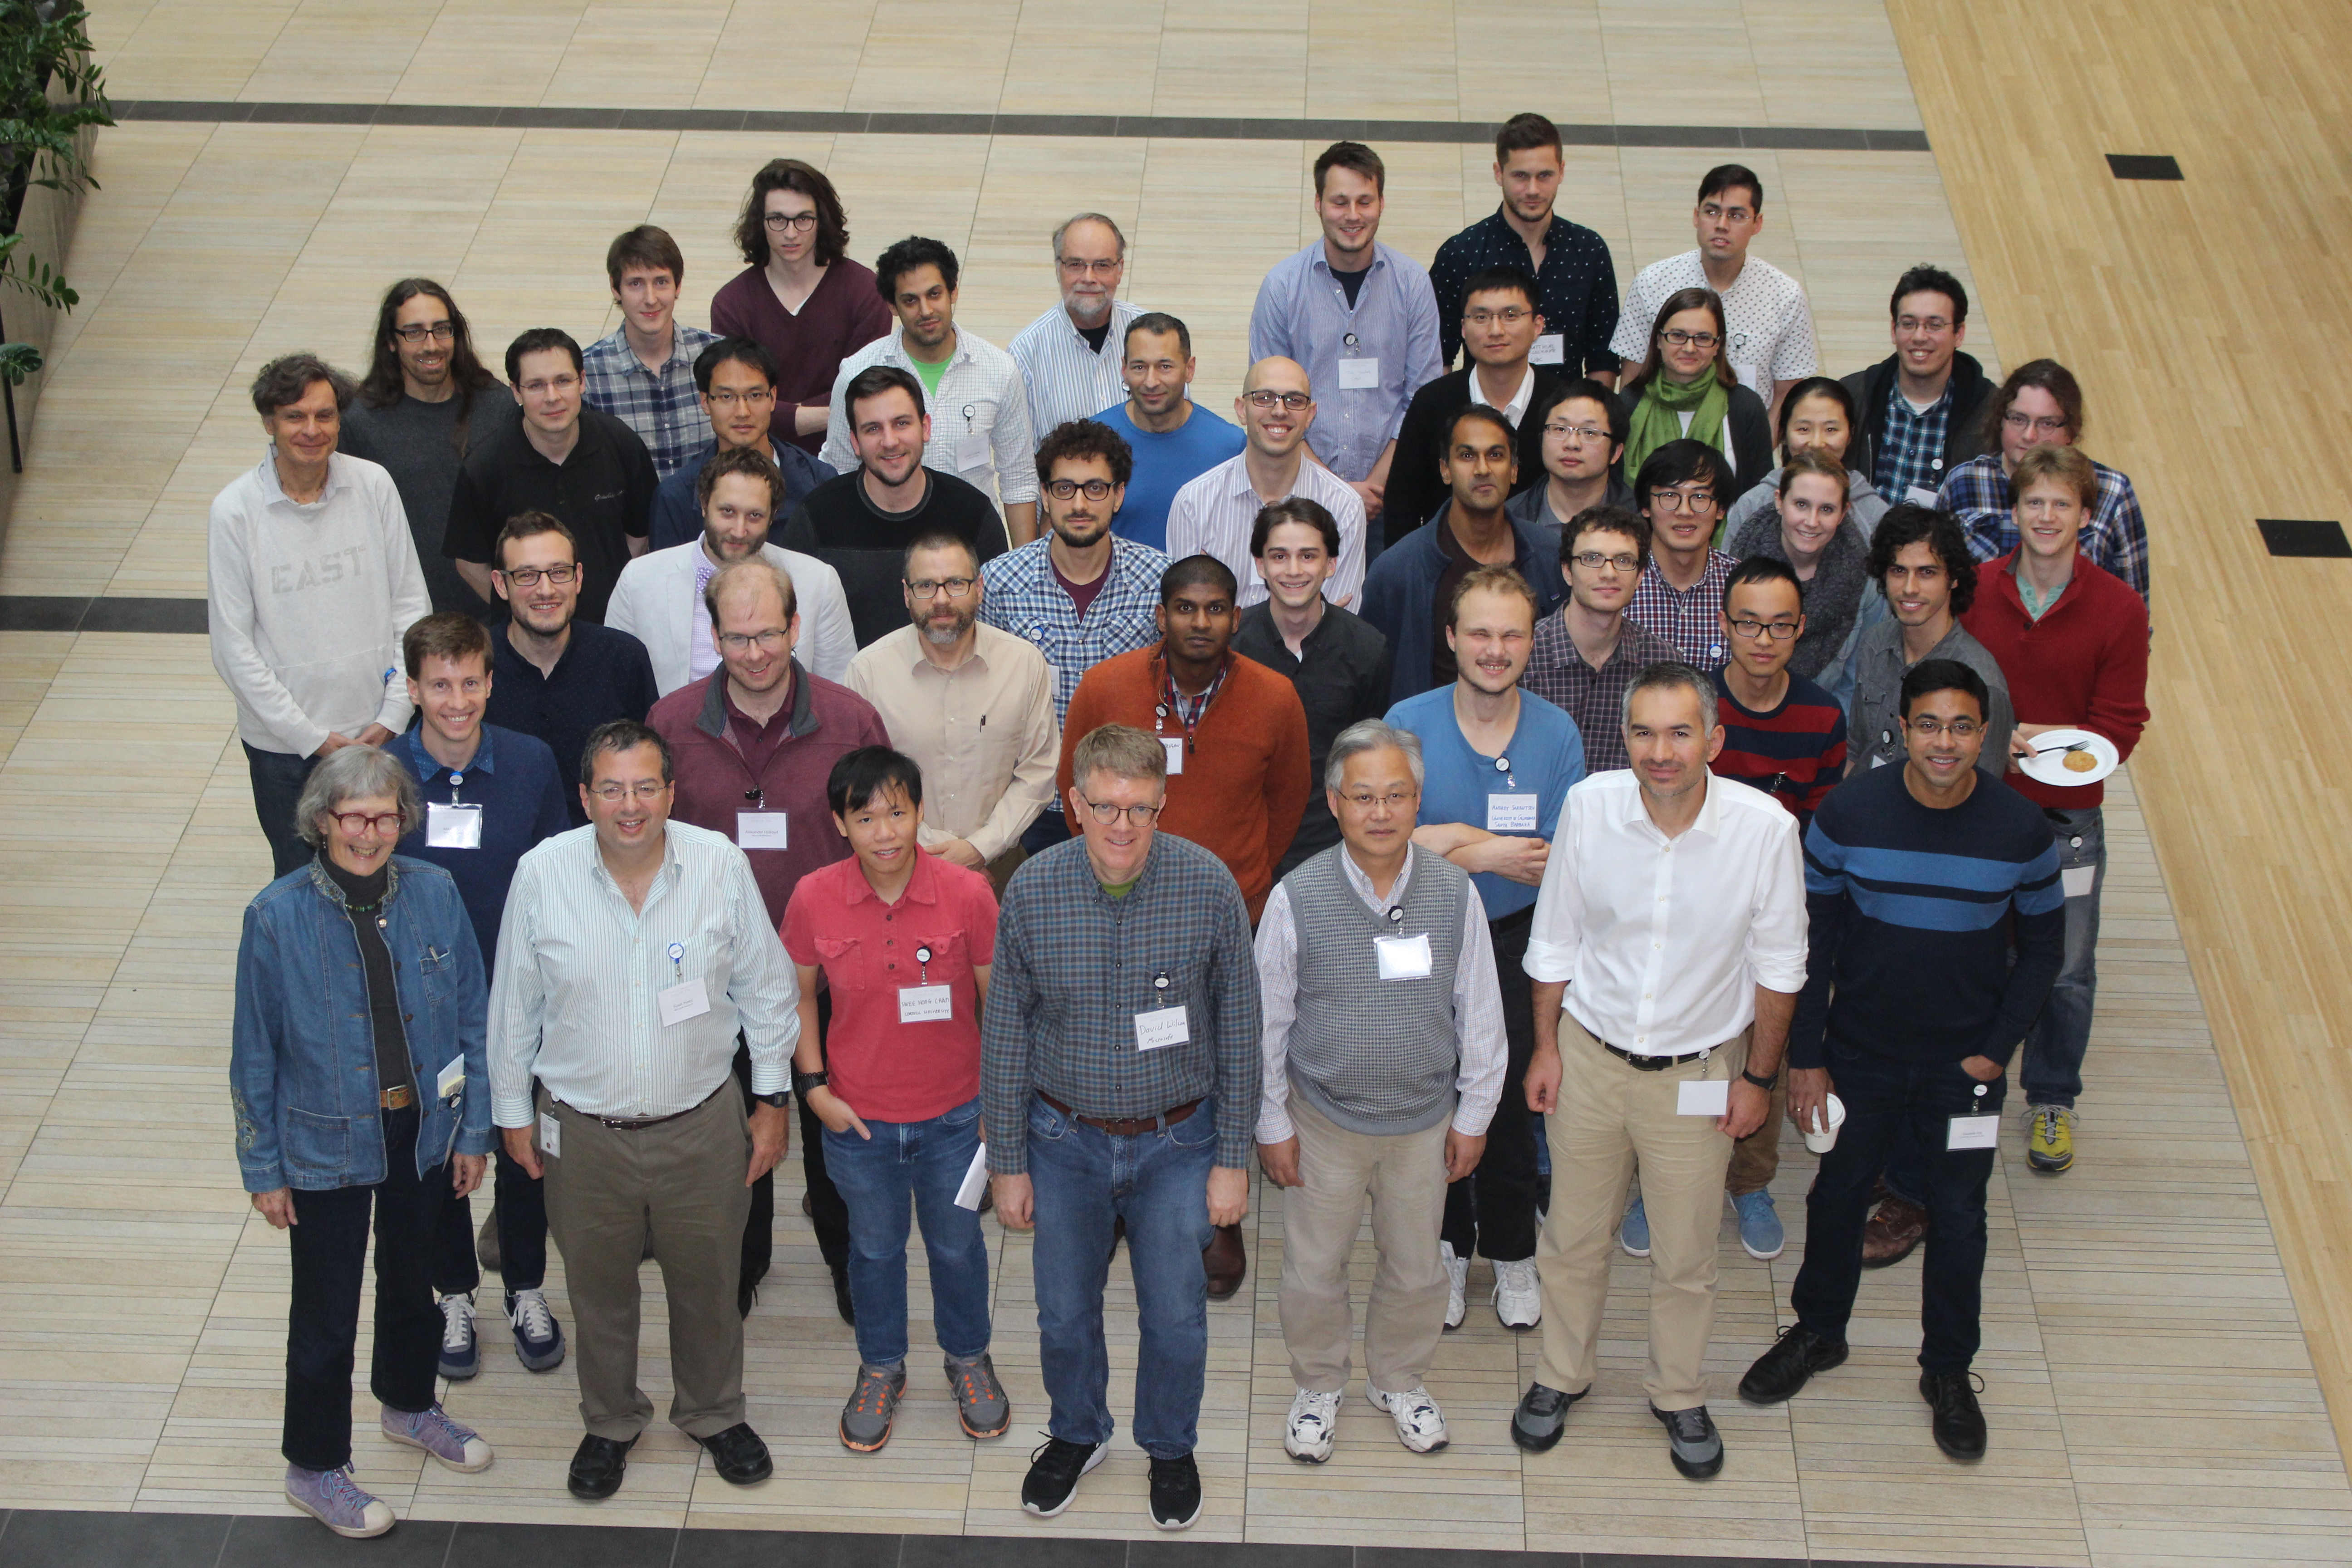 Participants of the Northwest Probability Seminar 2016